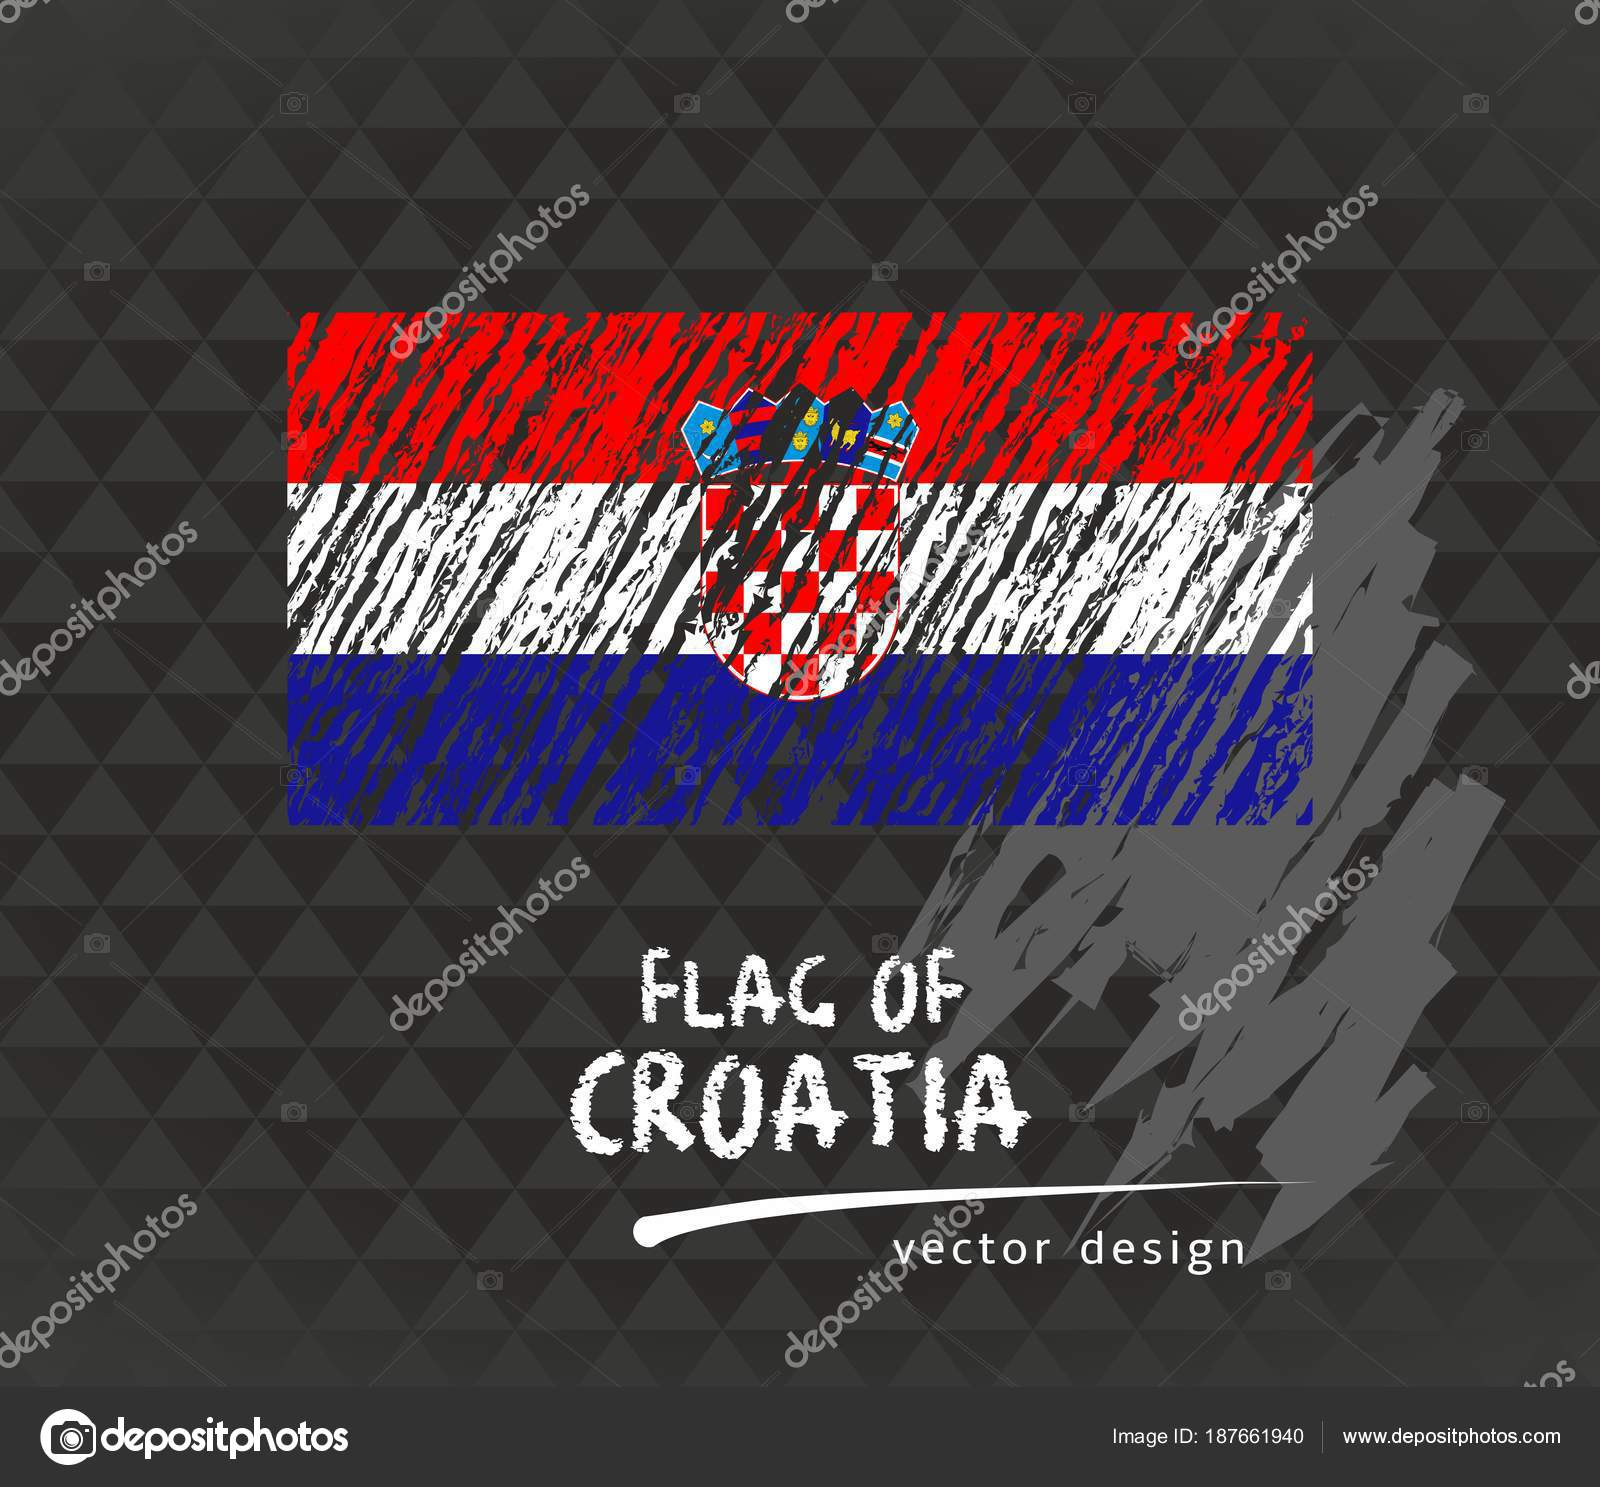 Croatia Flag Vector Sketch Hand Drawn Illustration Dark Grunge ...